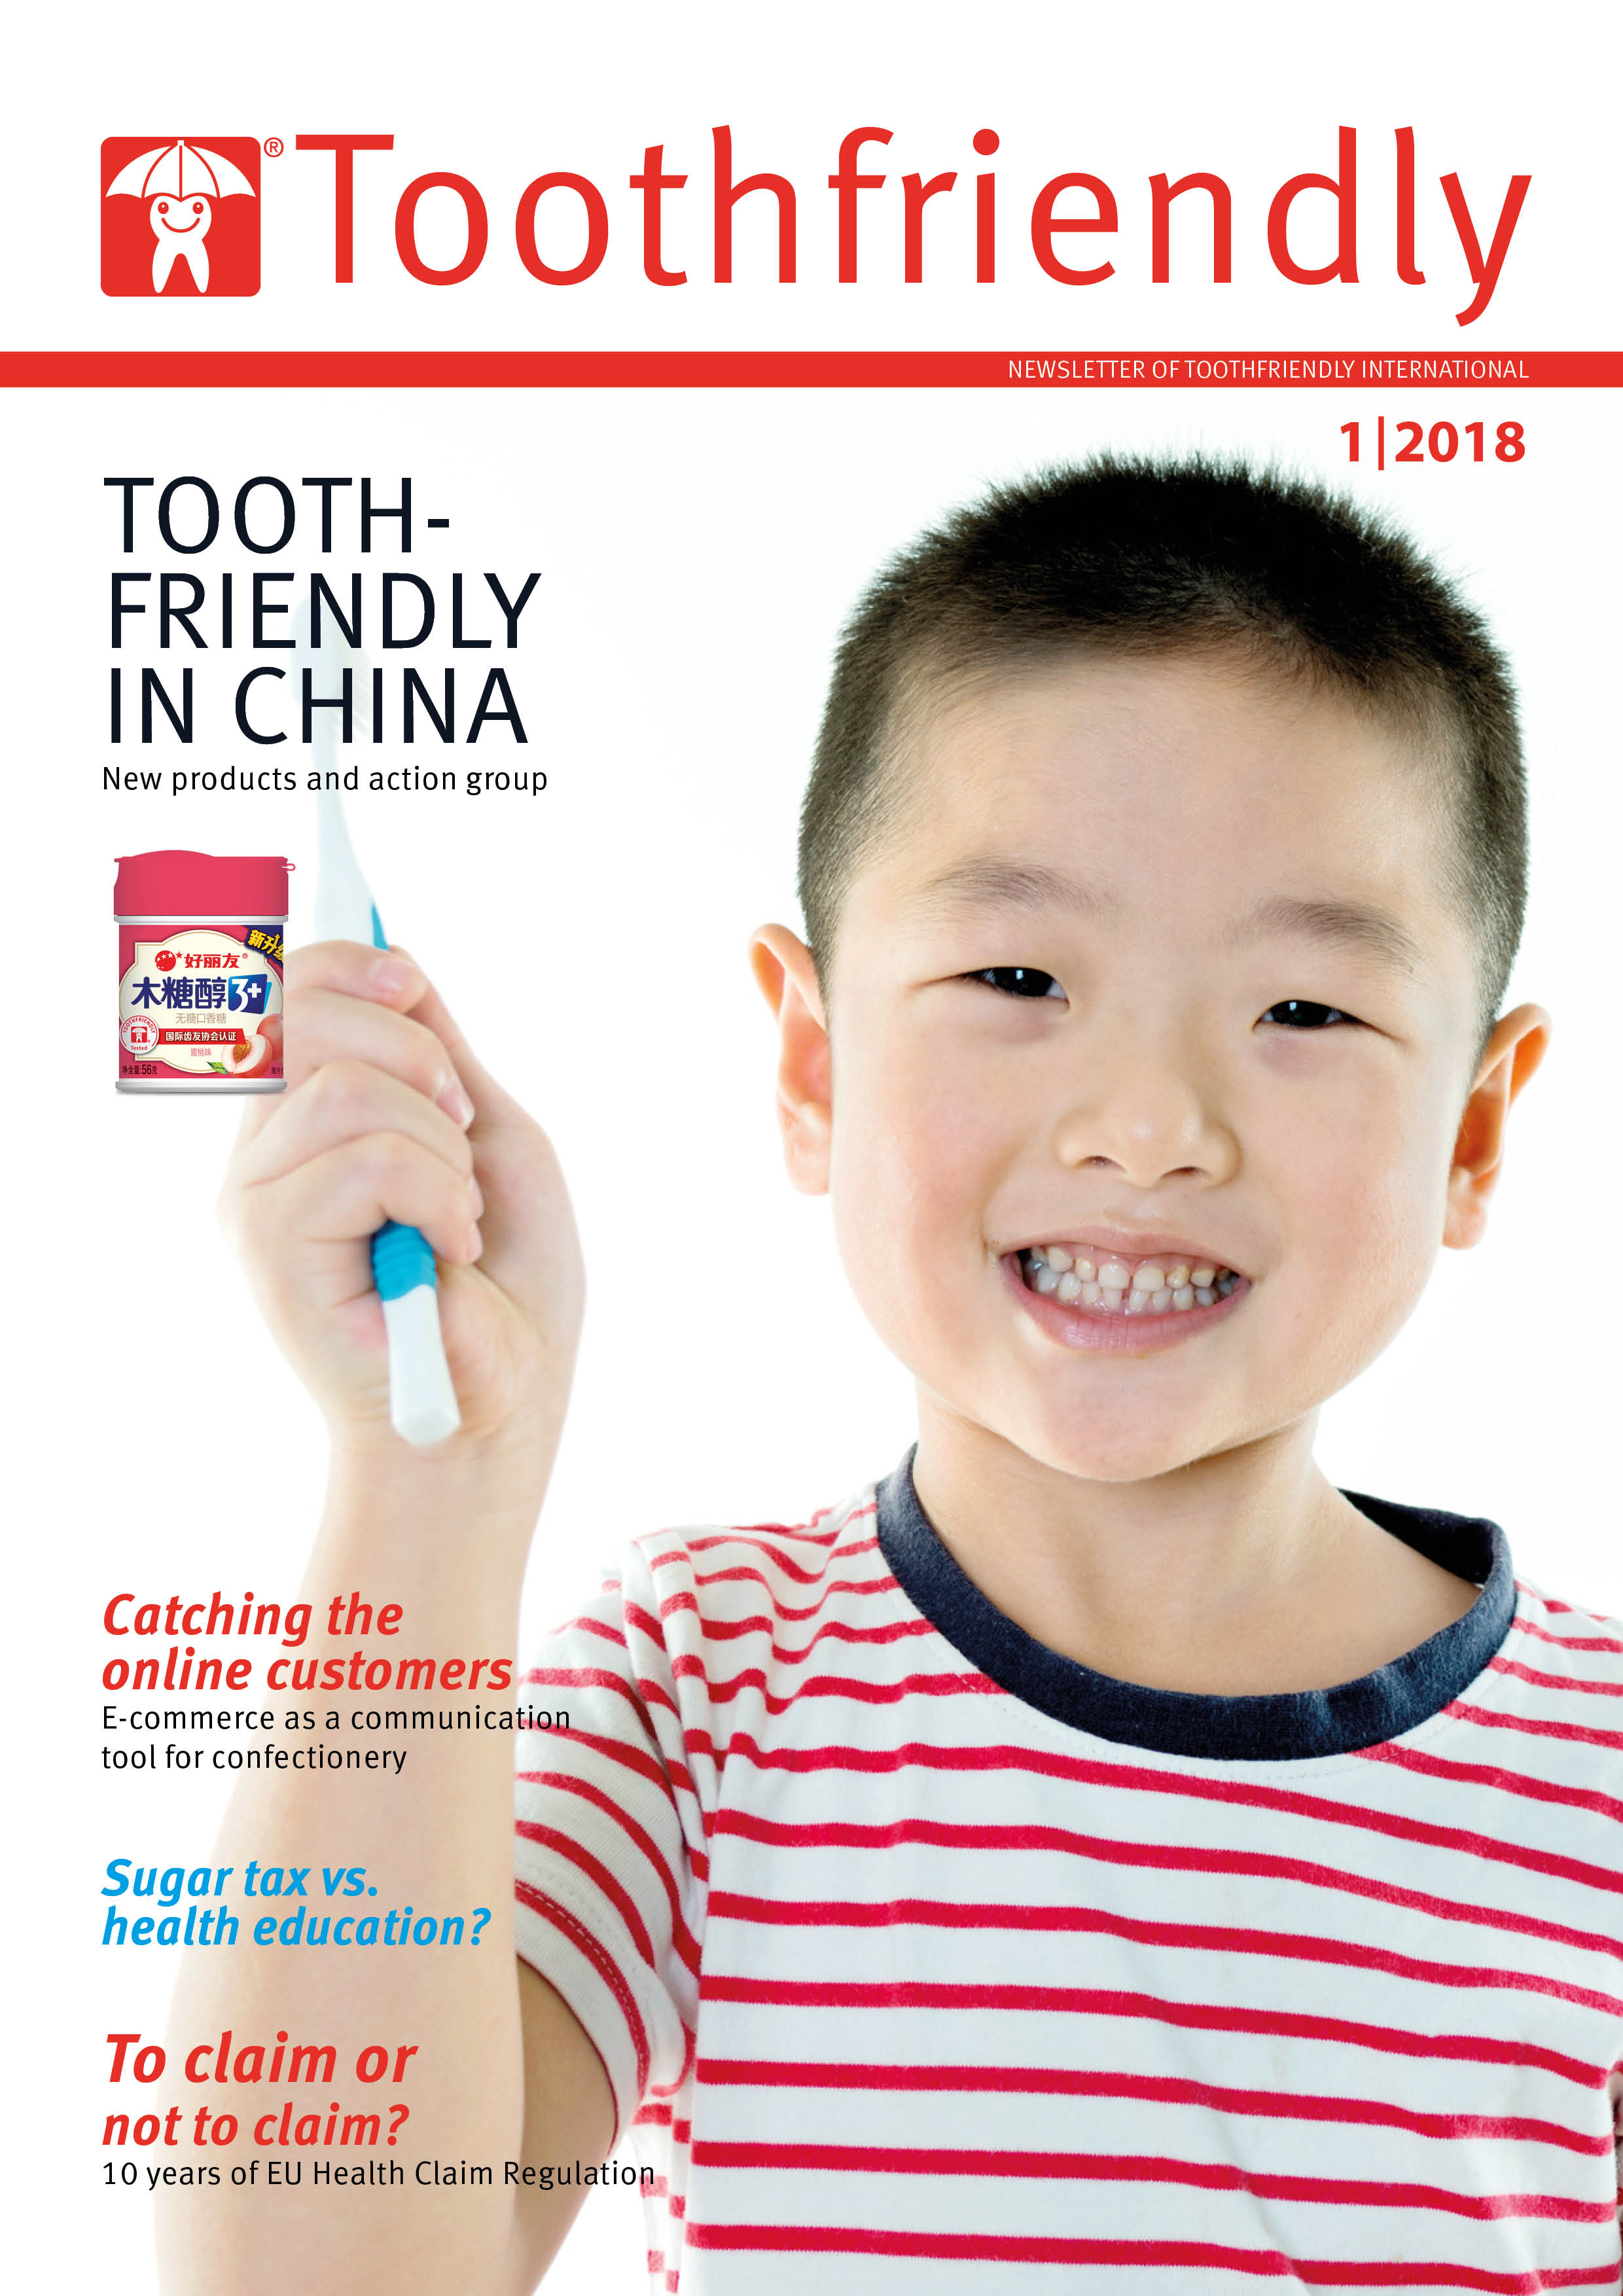 ToothfriendlyNewsletter2018 cover